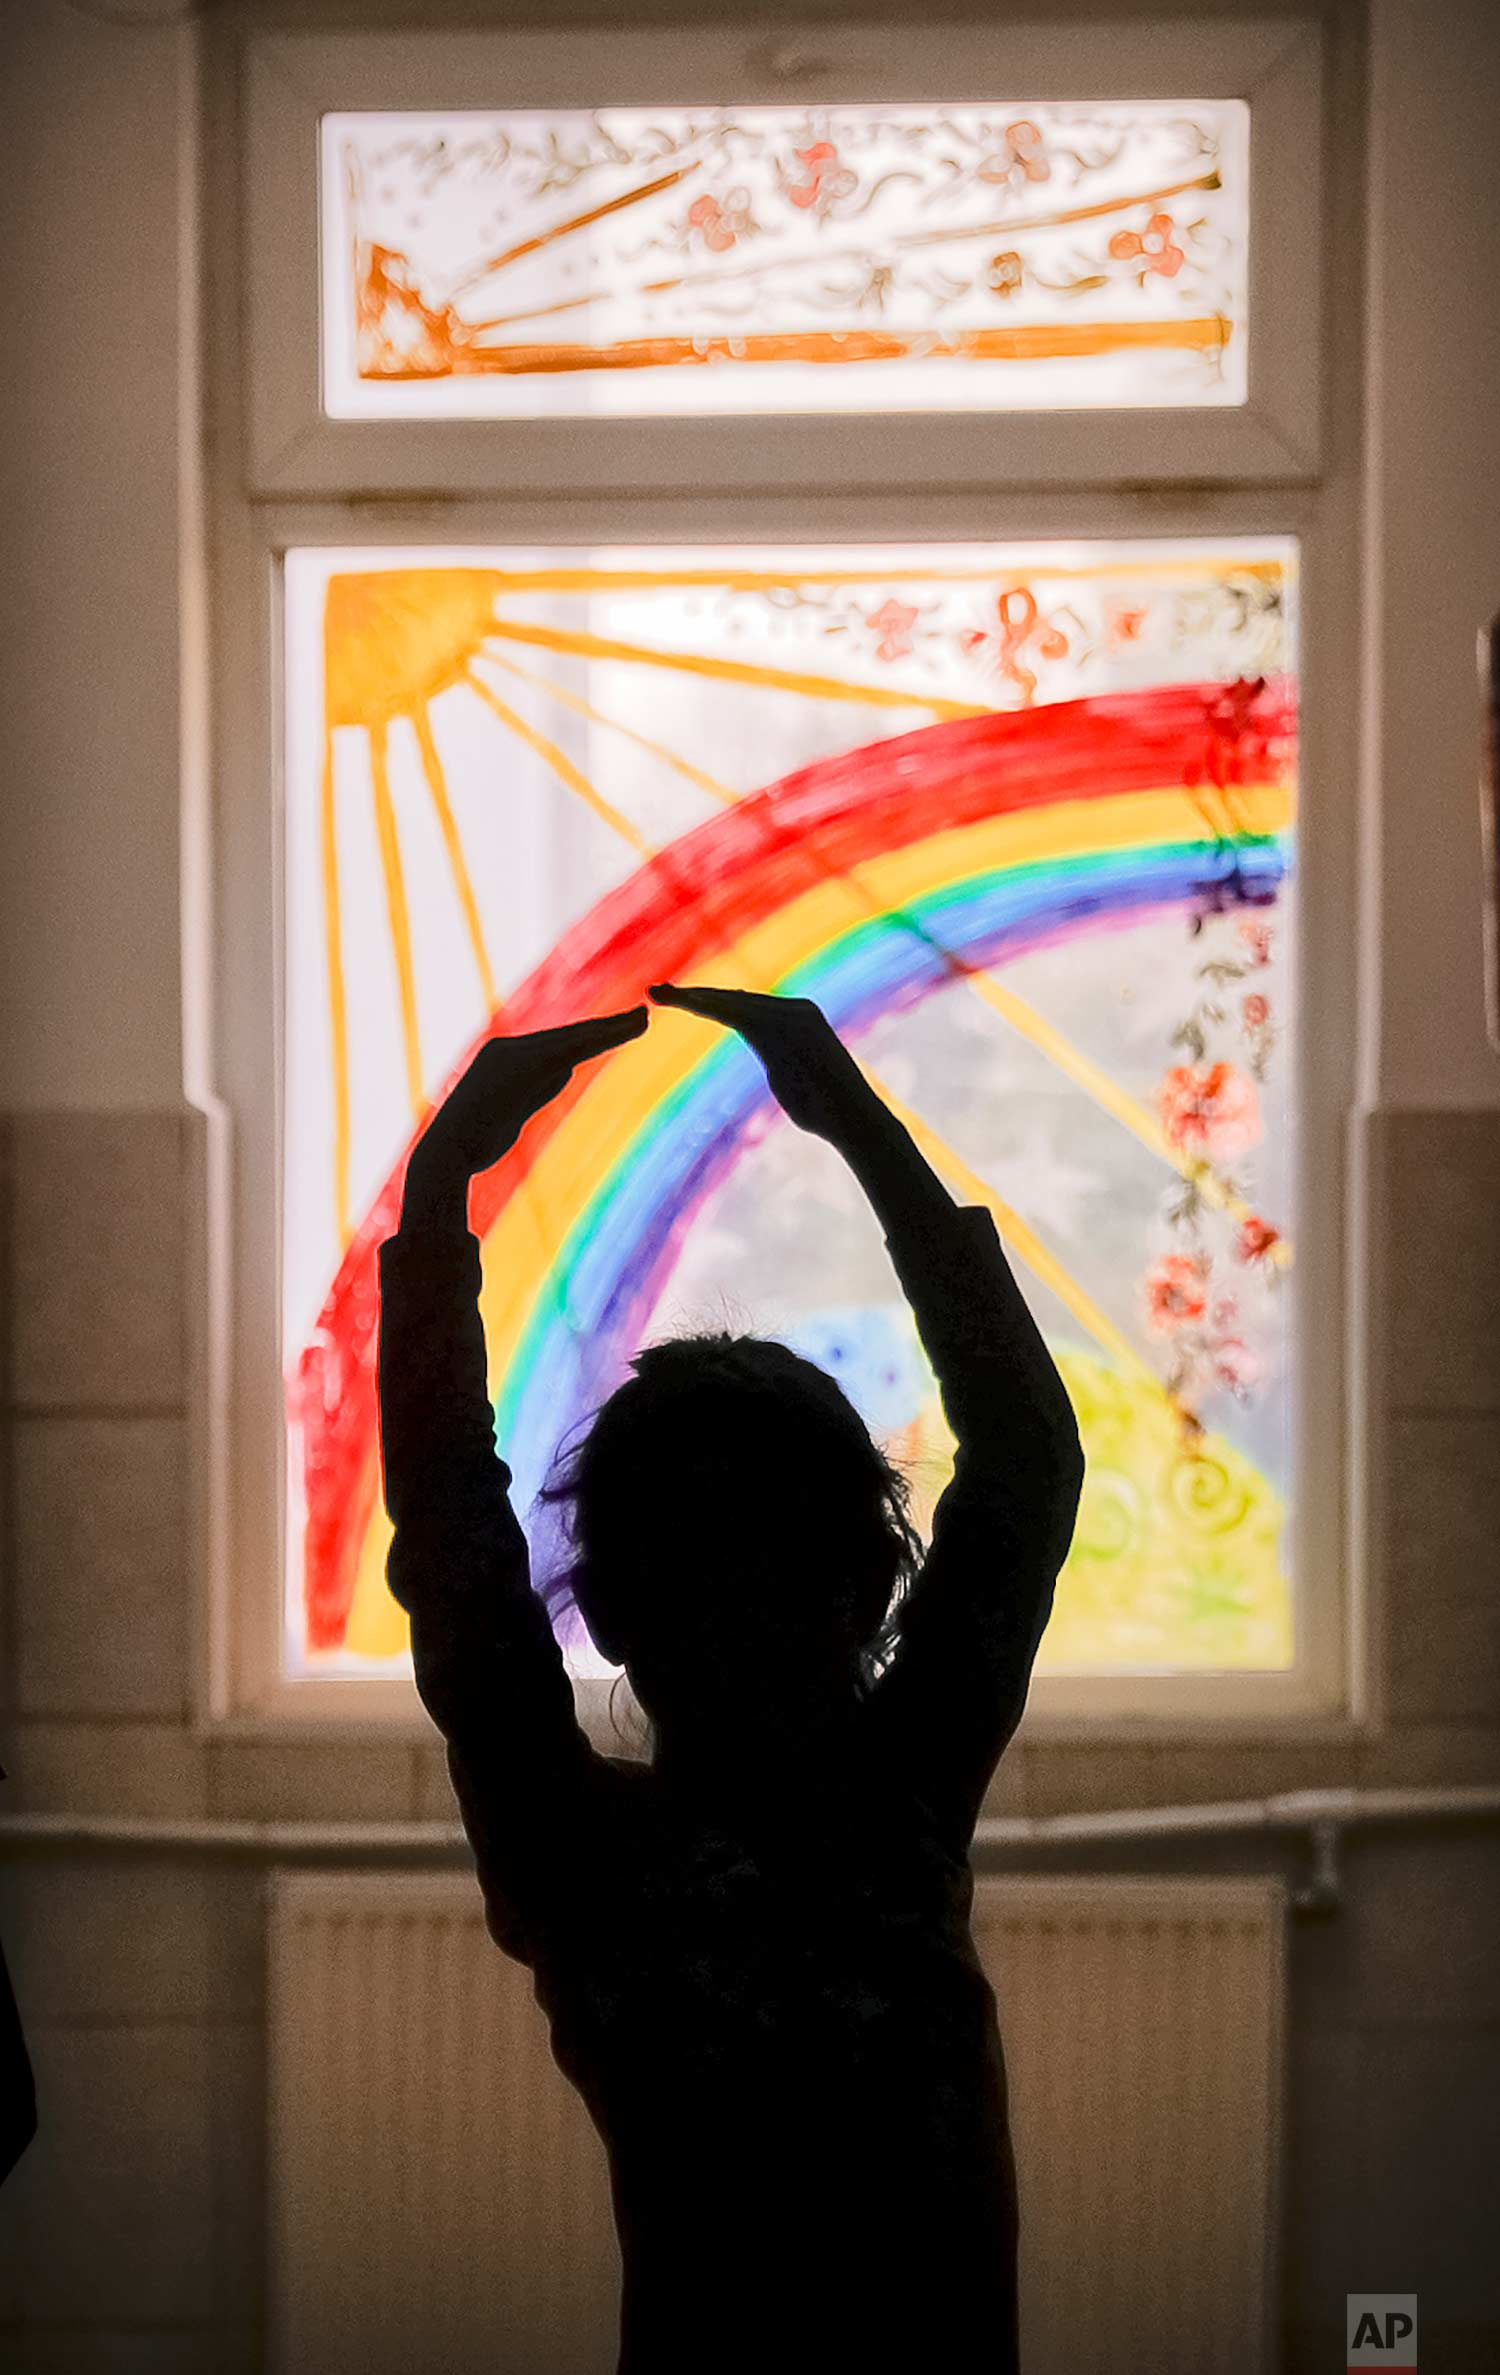 Sara, a child living at the Robin Hood orphanage, tries a ballet move while posing on a corridor with painted windows, in Bucharest, Romania, on Friday, Nov. 3, 2017. (AP Photo/Vadim Ghirda)